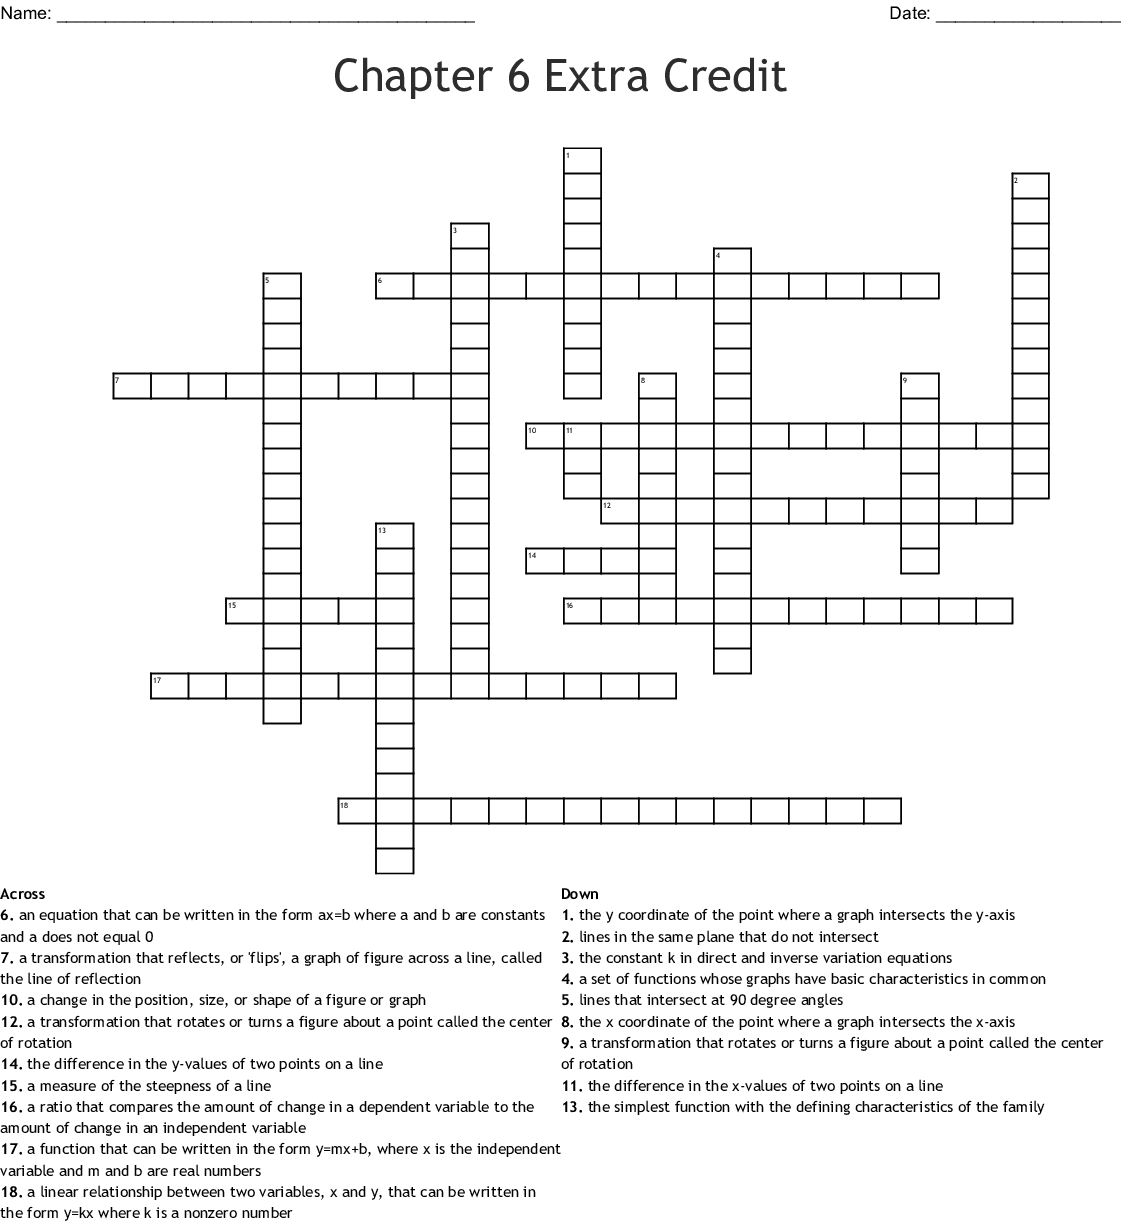 Chapter 6 Extra Credit Crossword